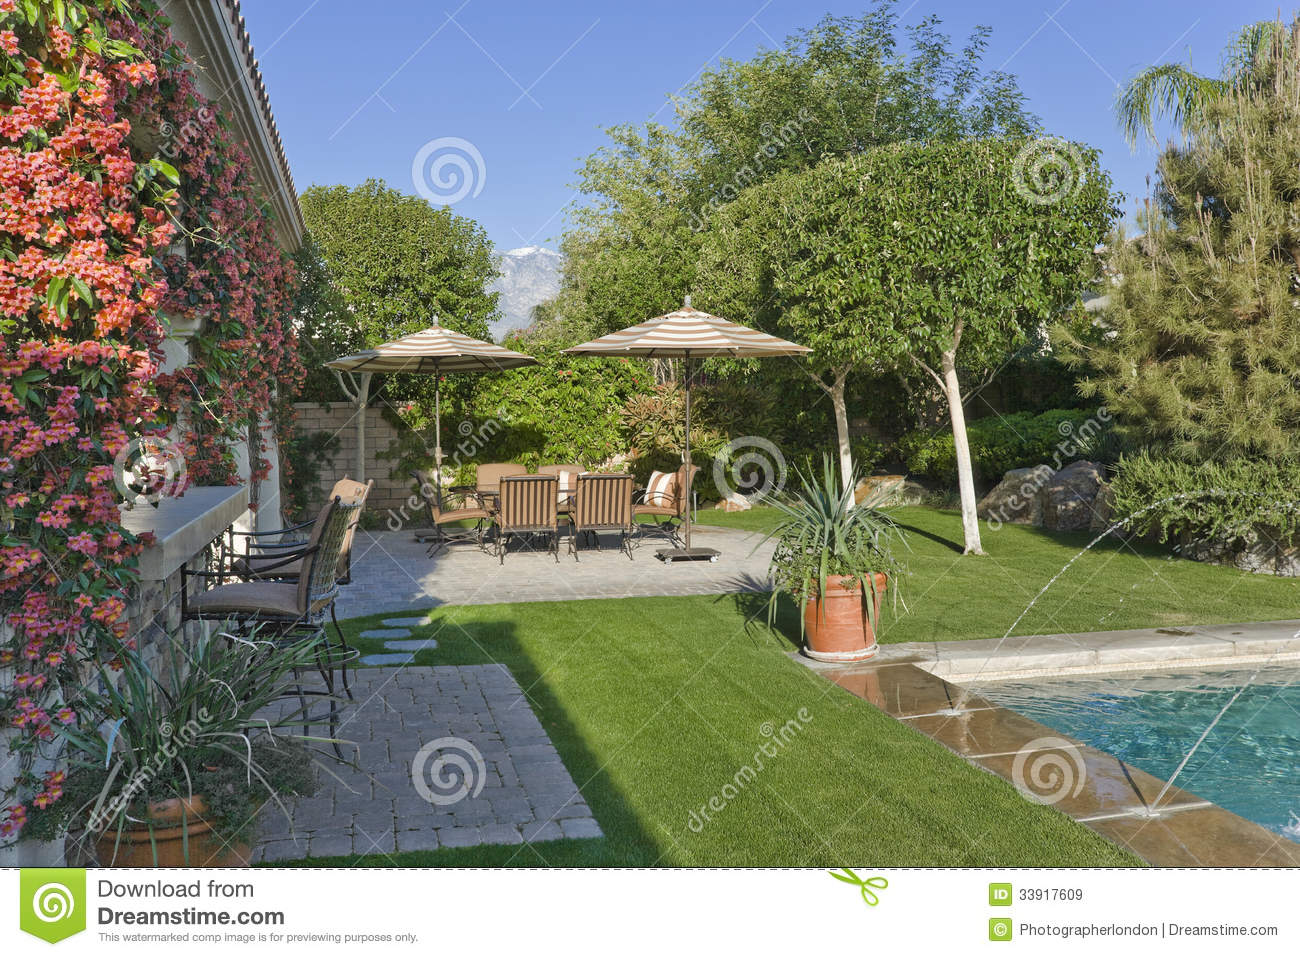 sitting area by pool in house backyard royalty free stock images